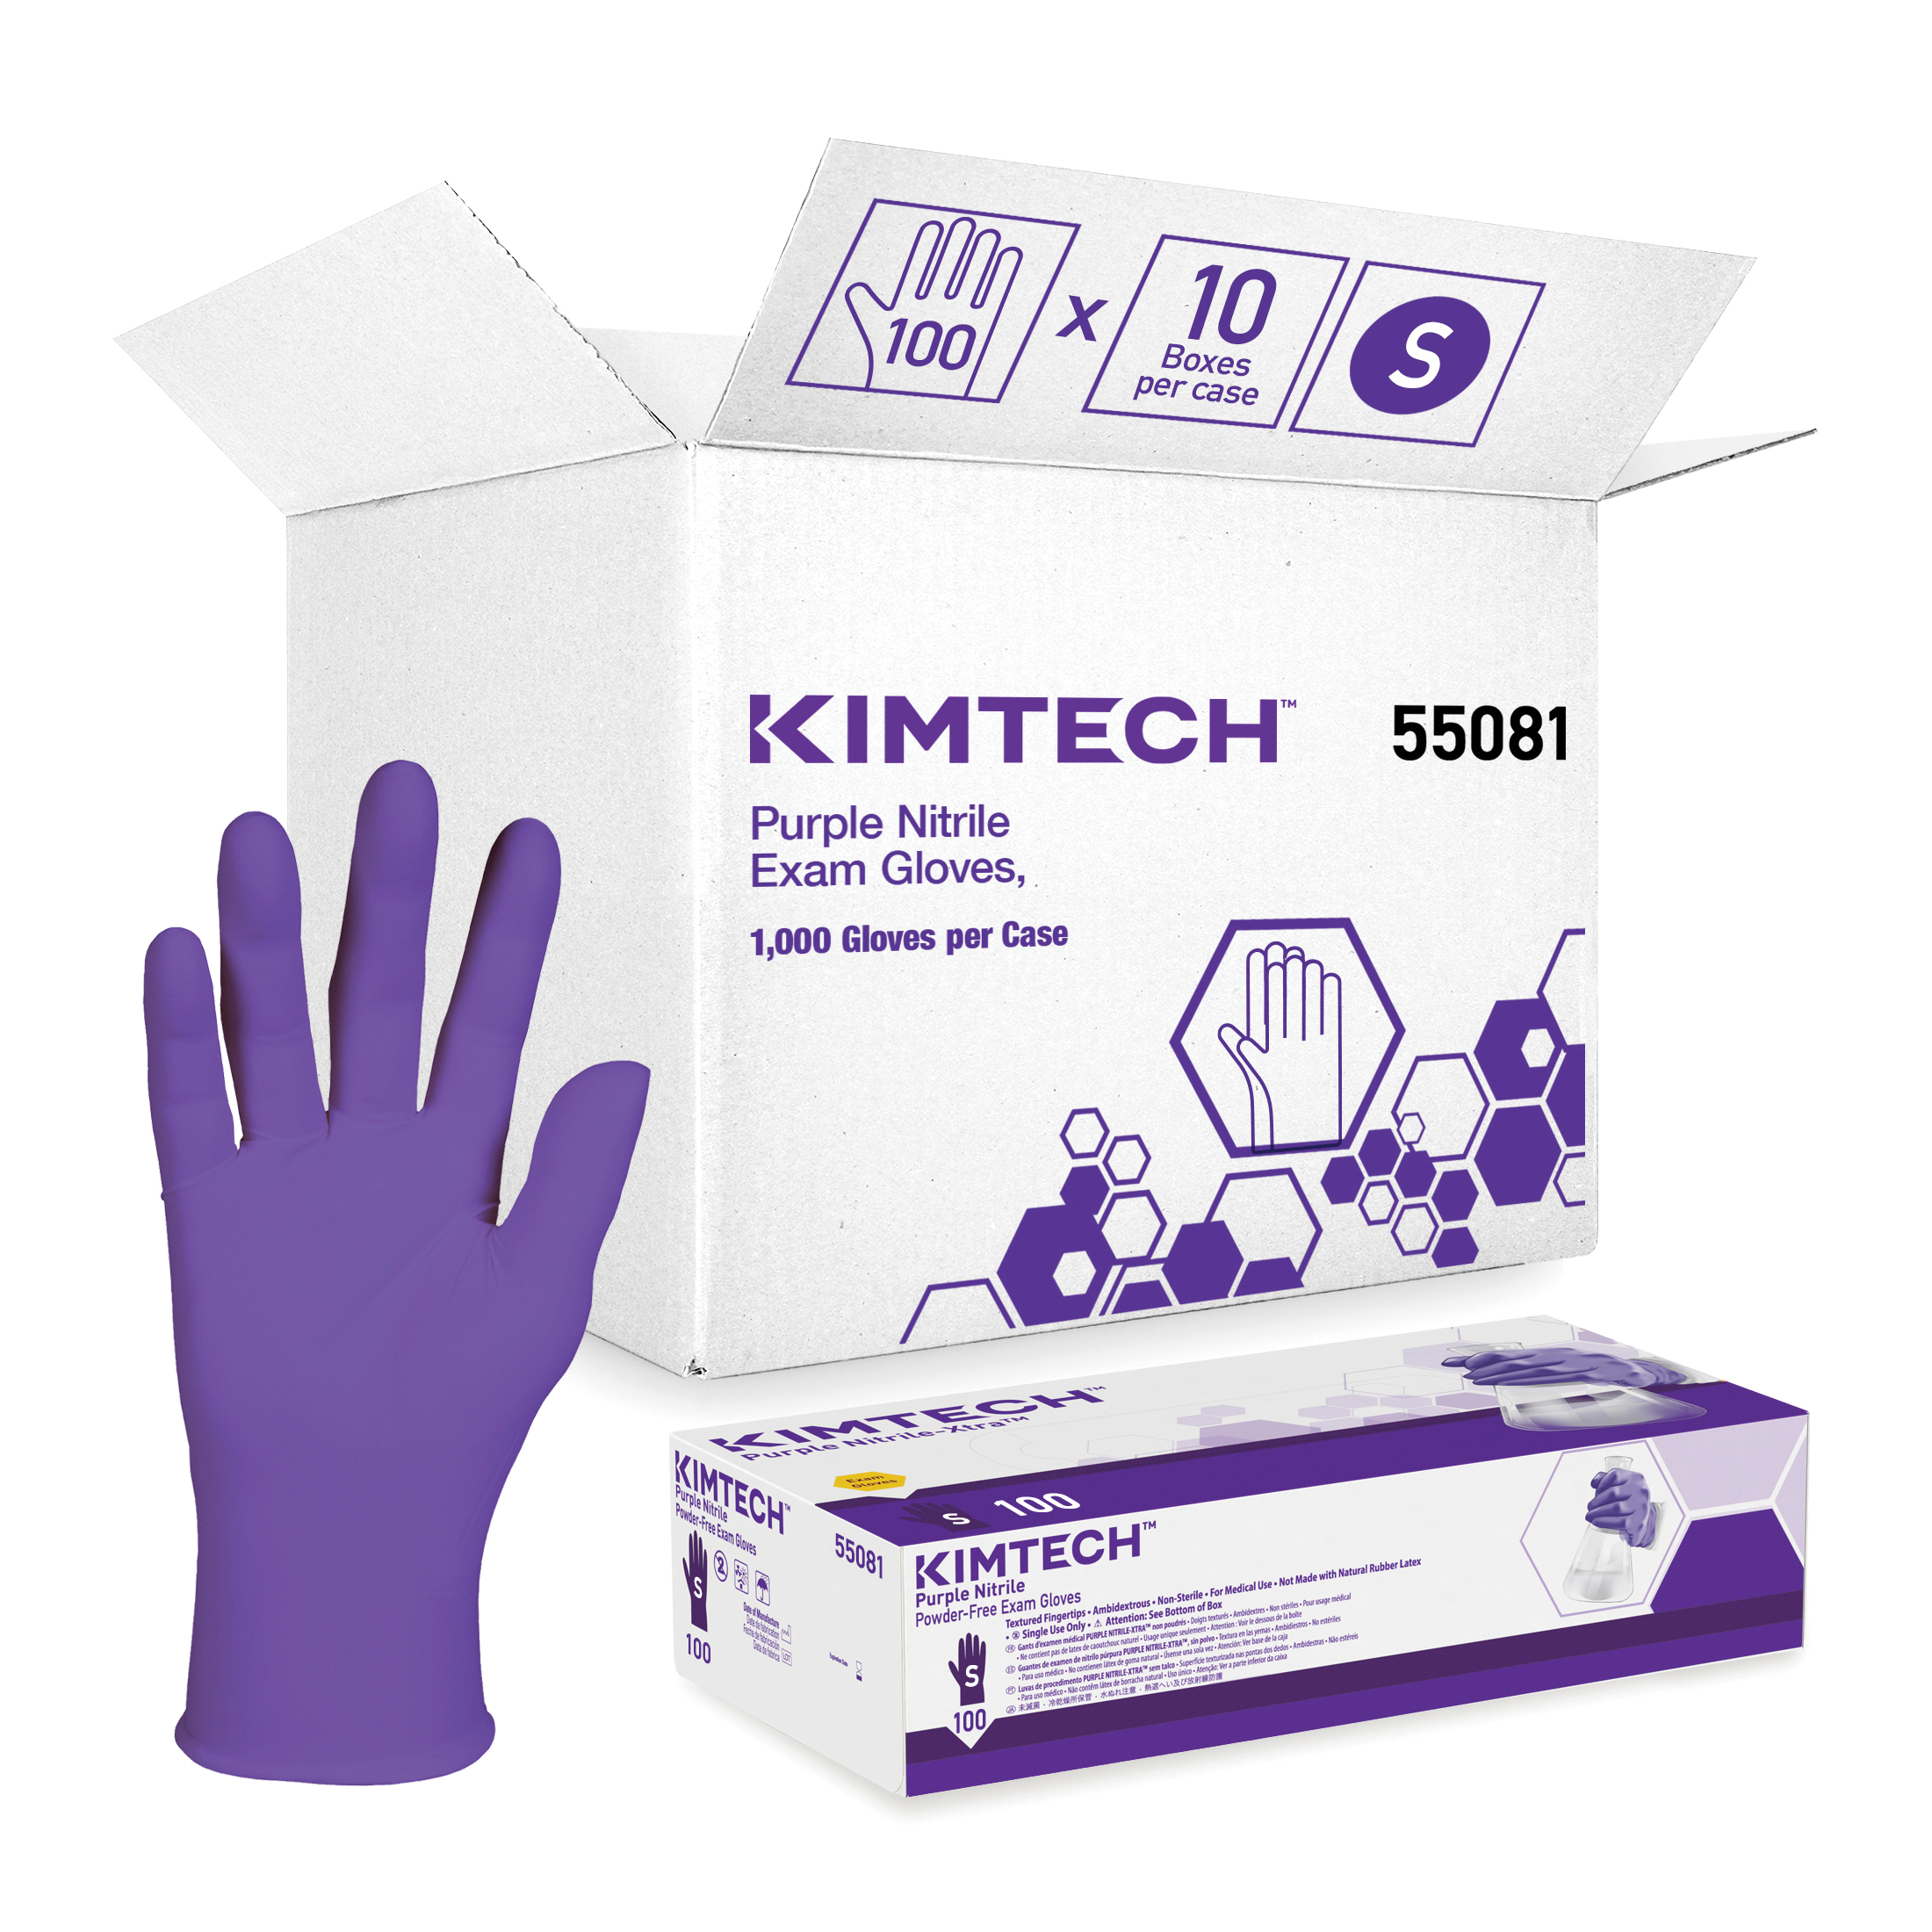 Kimberly-Clark* 55081 Disposable Gloves, S, Nitrile™ Polymer, Purple, 9-1/2 in L, Non-Powdered, Textured, 6 mil THK, Application Type: Exam/Medical Grade, Ambidextrous Hand